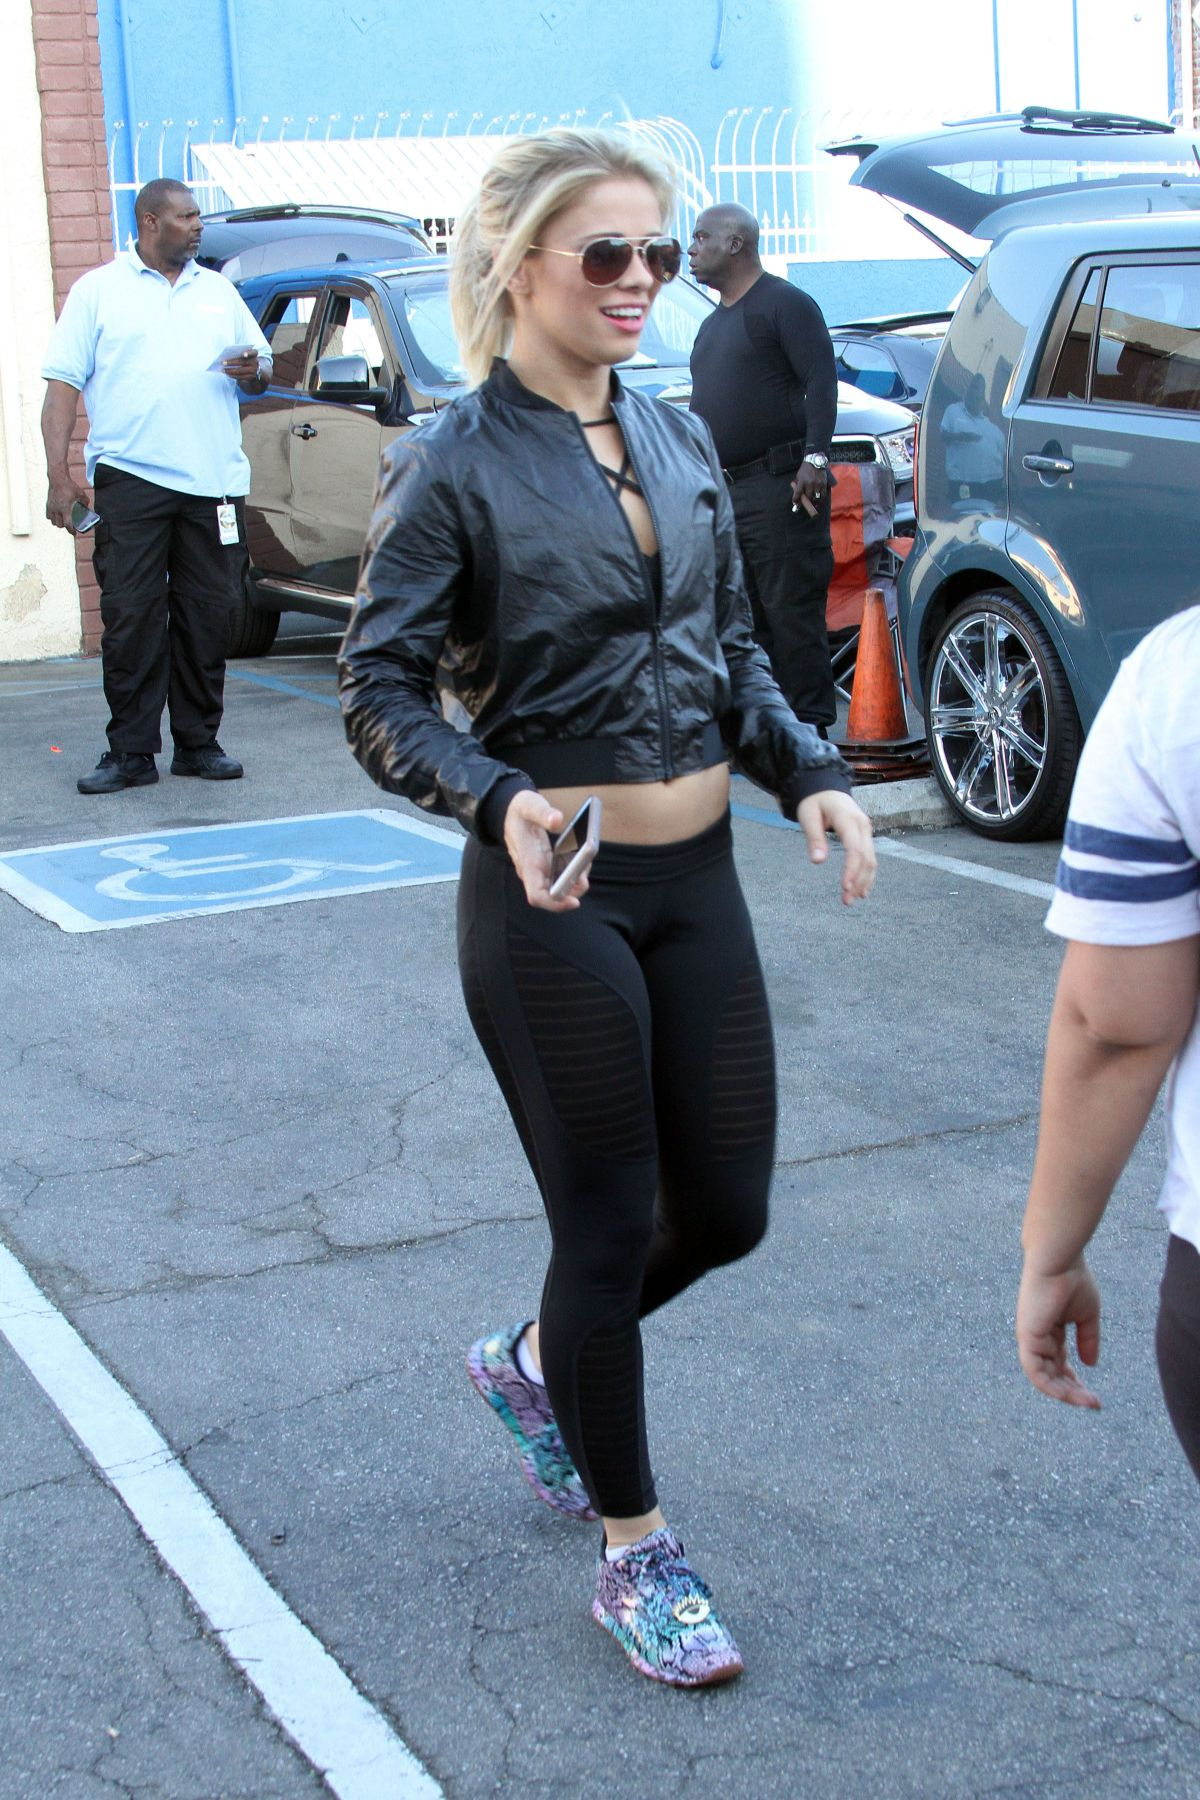 paige vanzant at dwts rehersal in hollywood 04172016